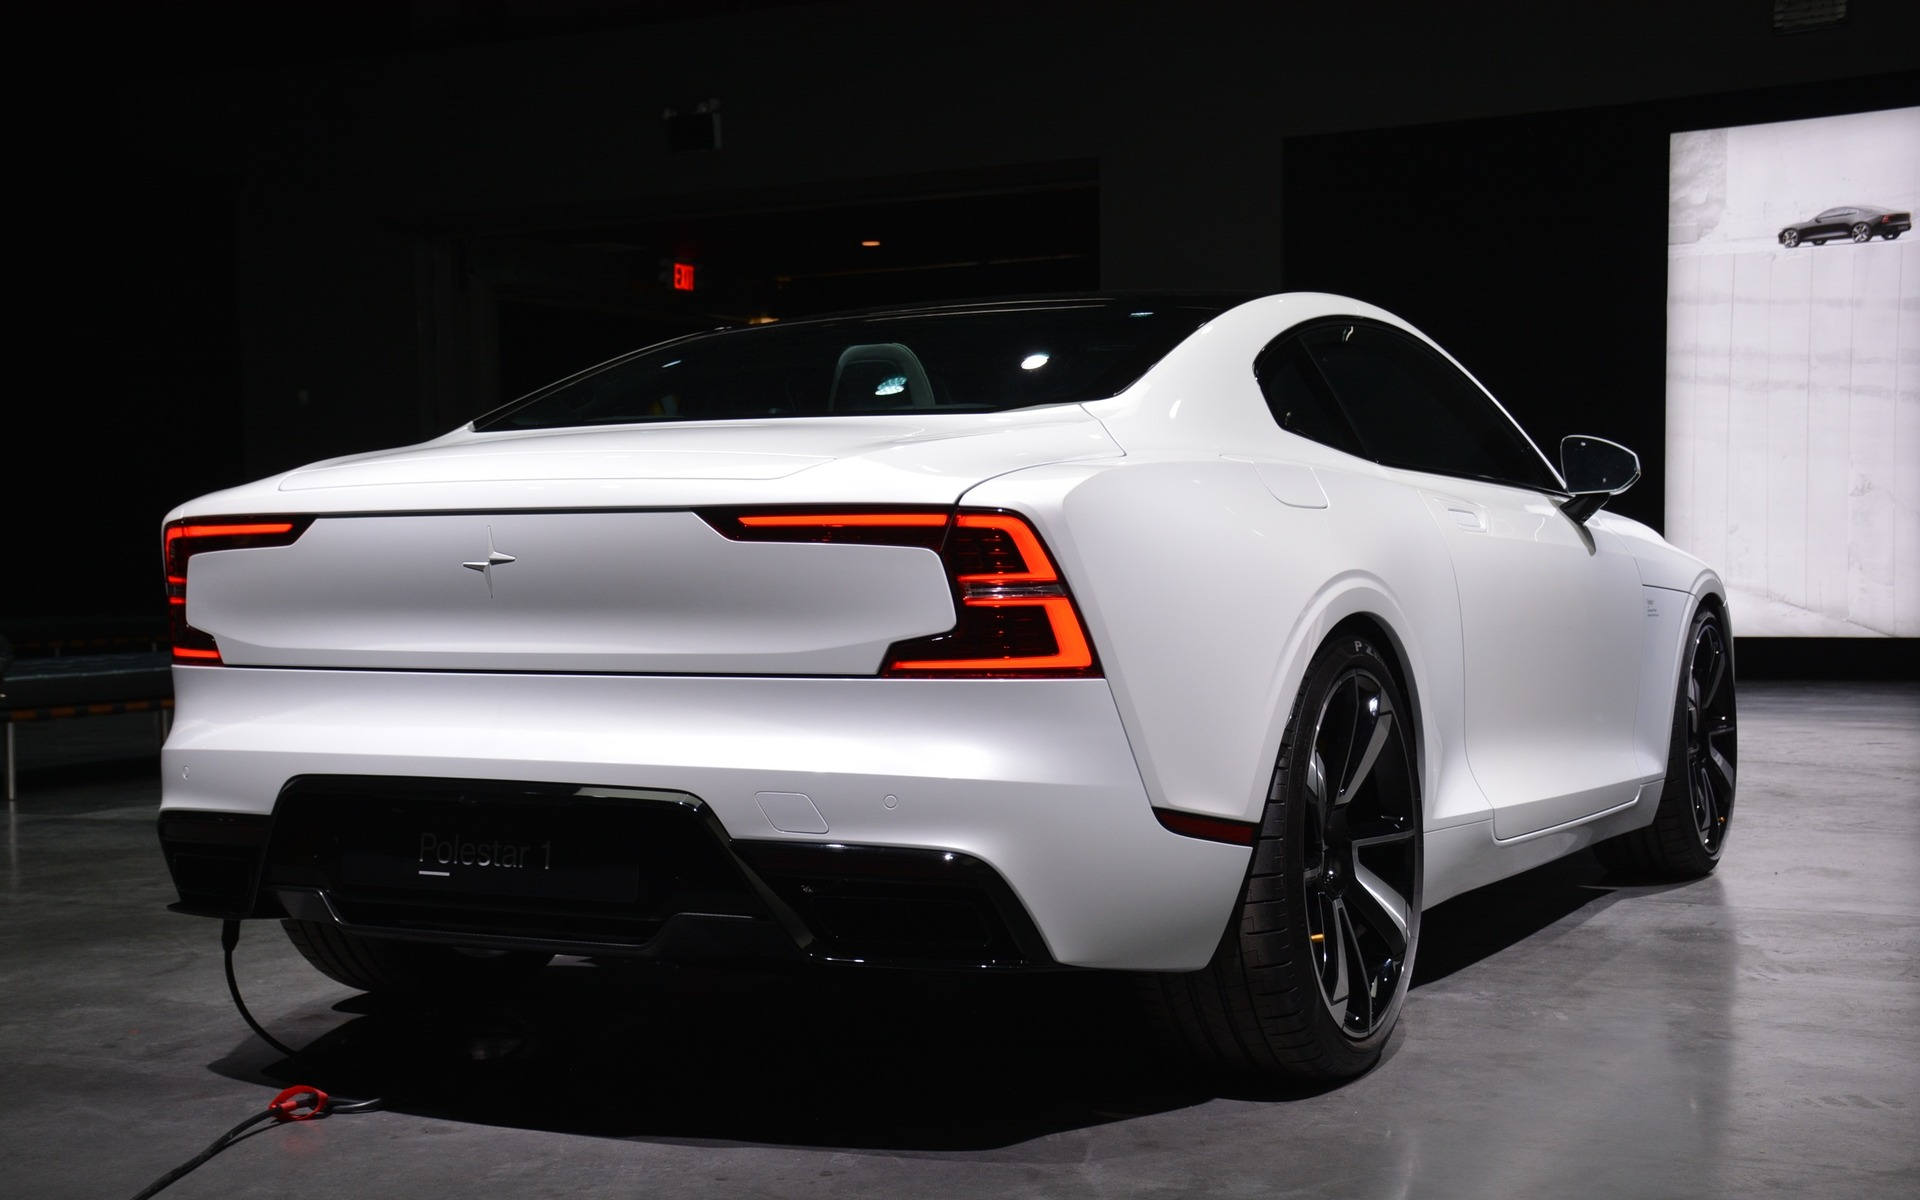 <p>The Polestar 1 2+2 hybrid coupe</p>